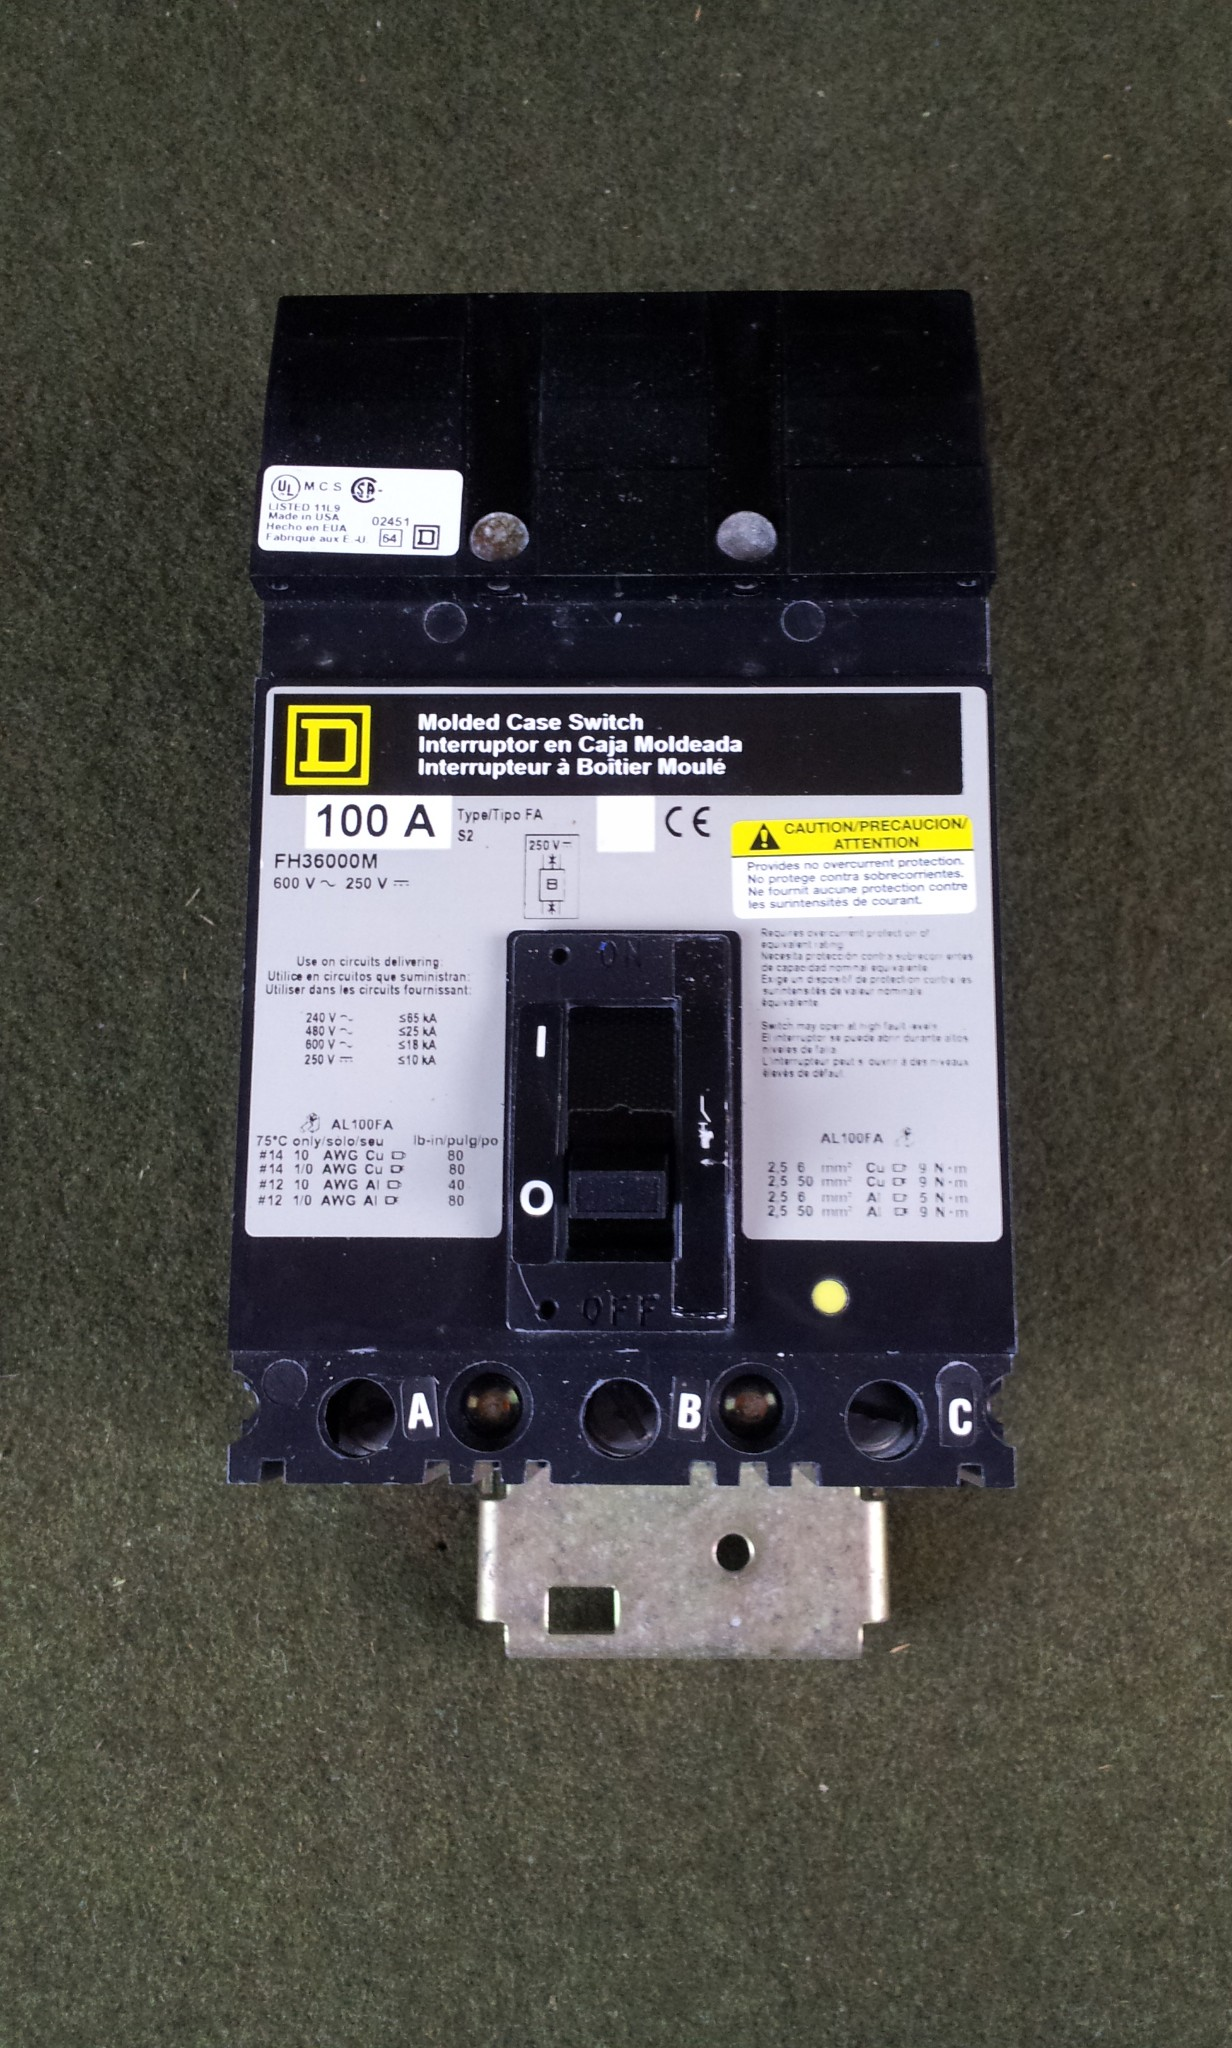 Square D 3 Pole 100A 600V Molded Case Switch FH36000M Circuit Breaker